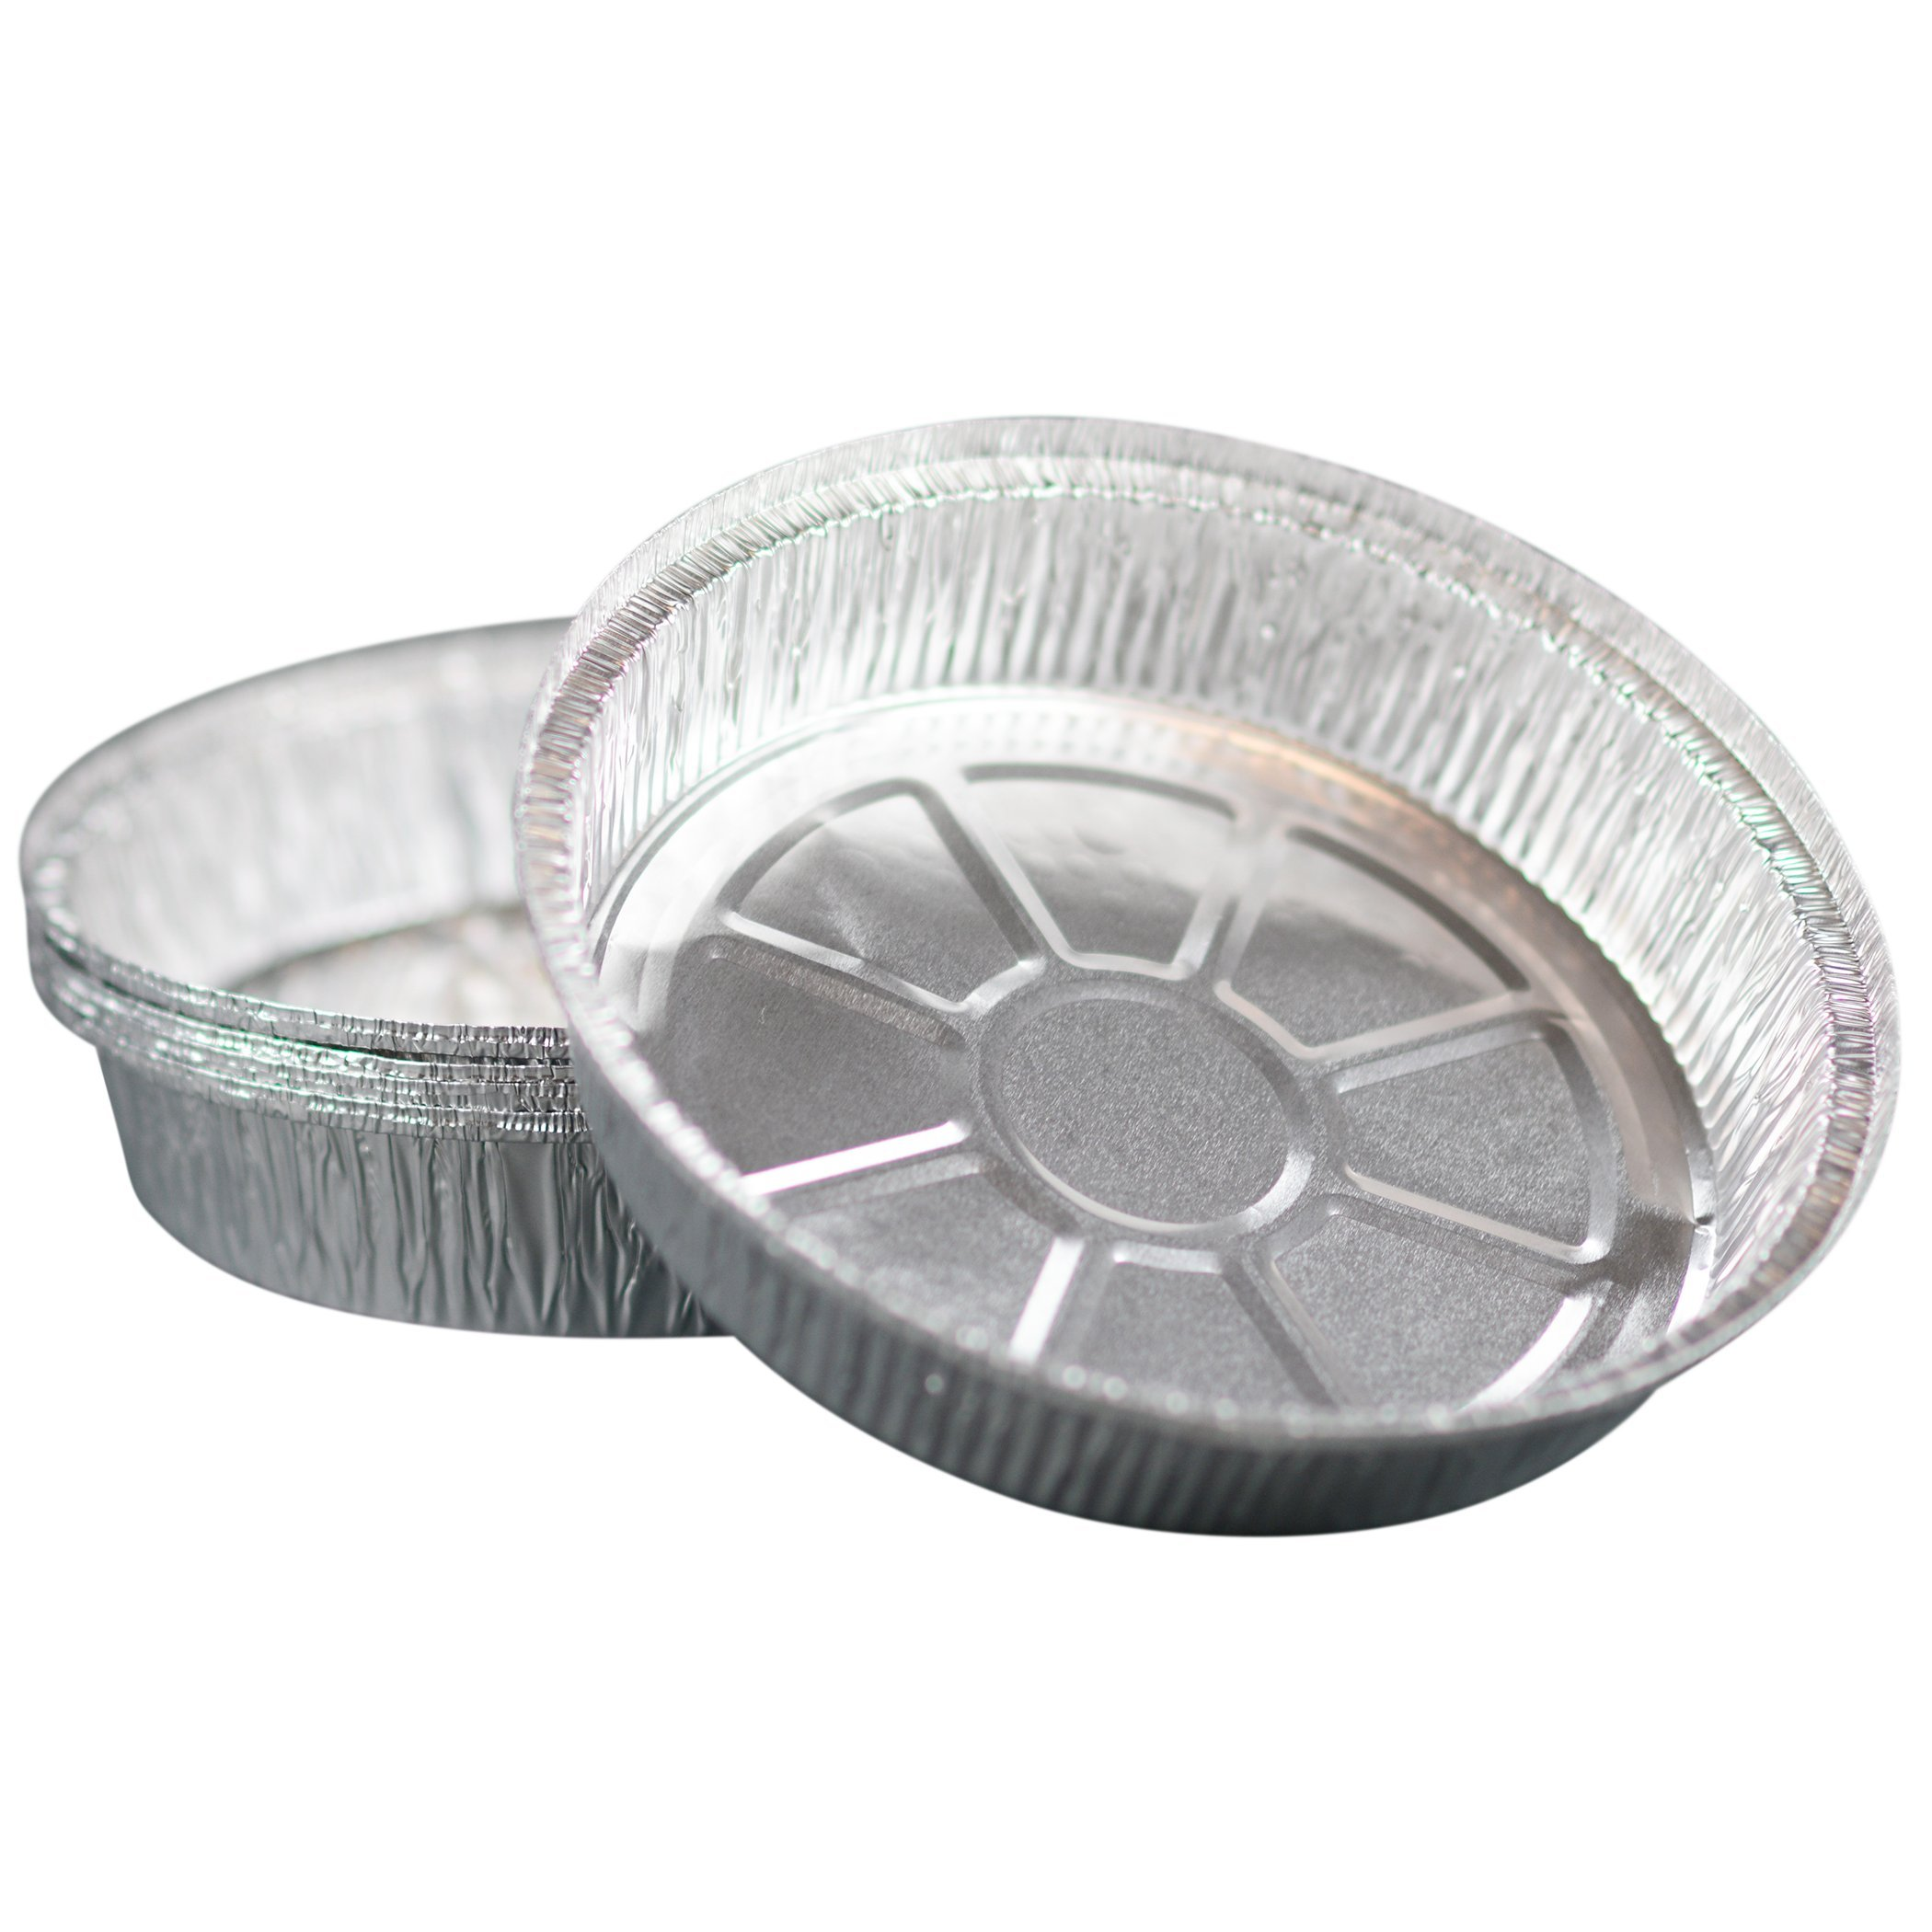 Simply Deliver 9-Inch Round Disposable Take-Out Pan, 30 Gauge Aluminum, 500-Count by Simply Deliver (Image #2)